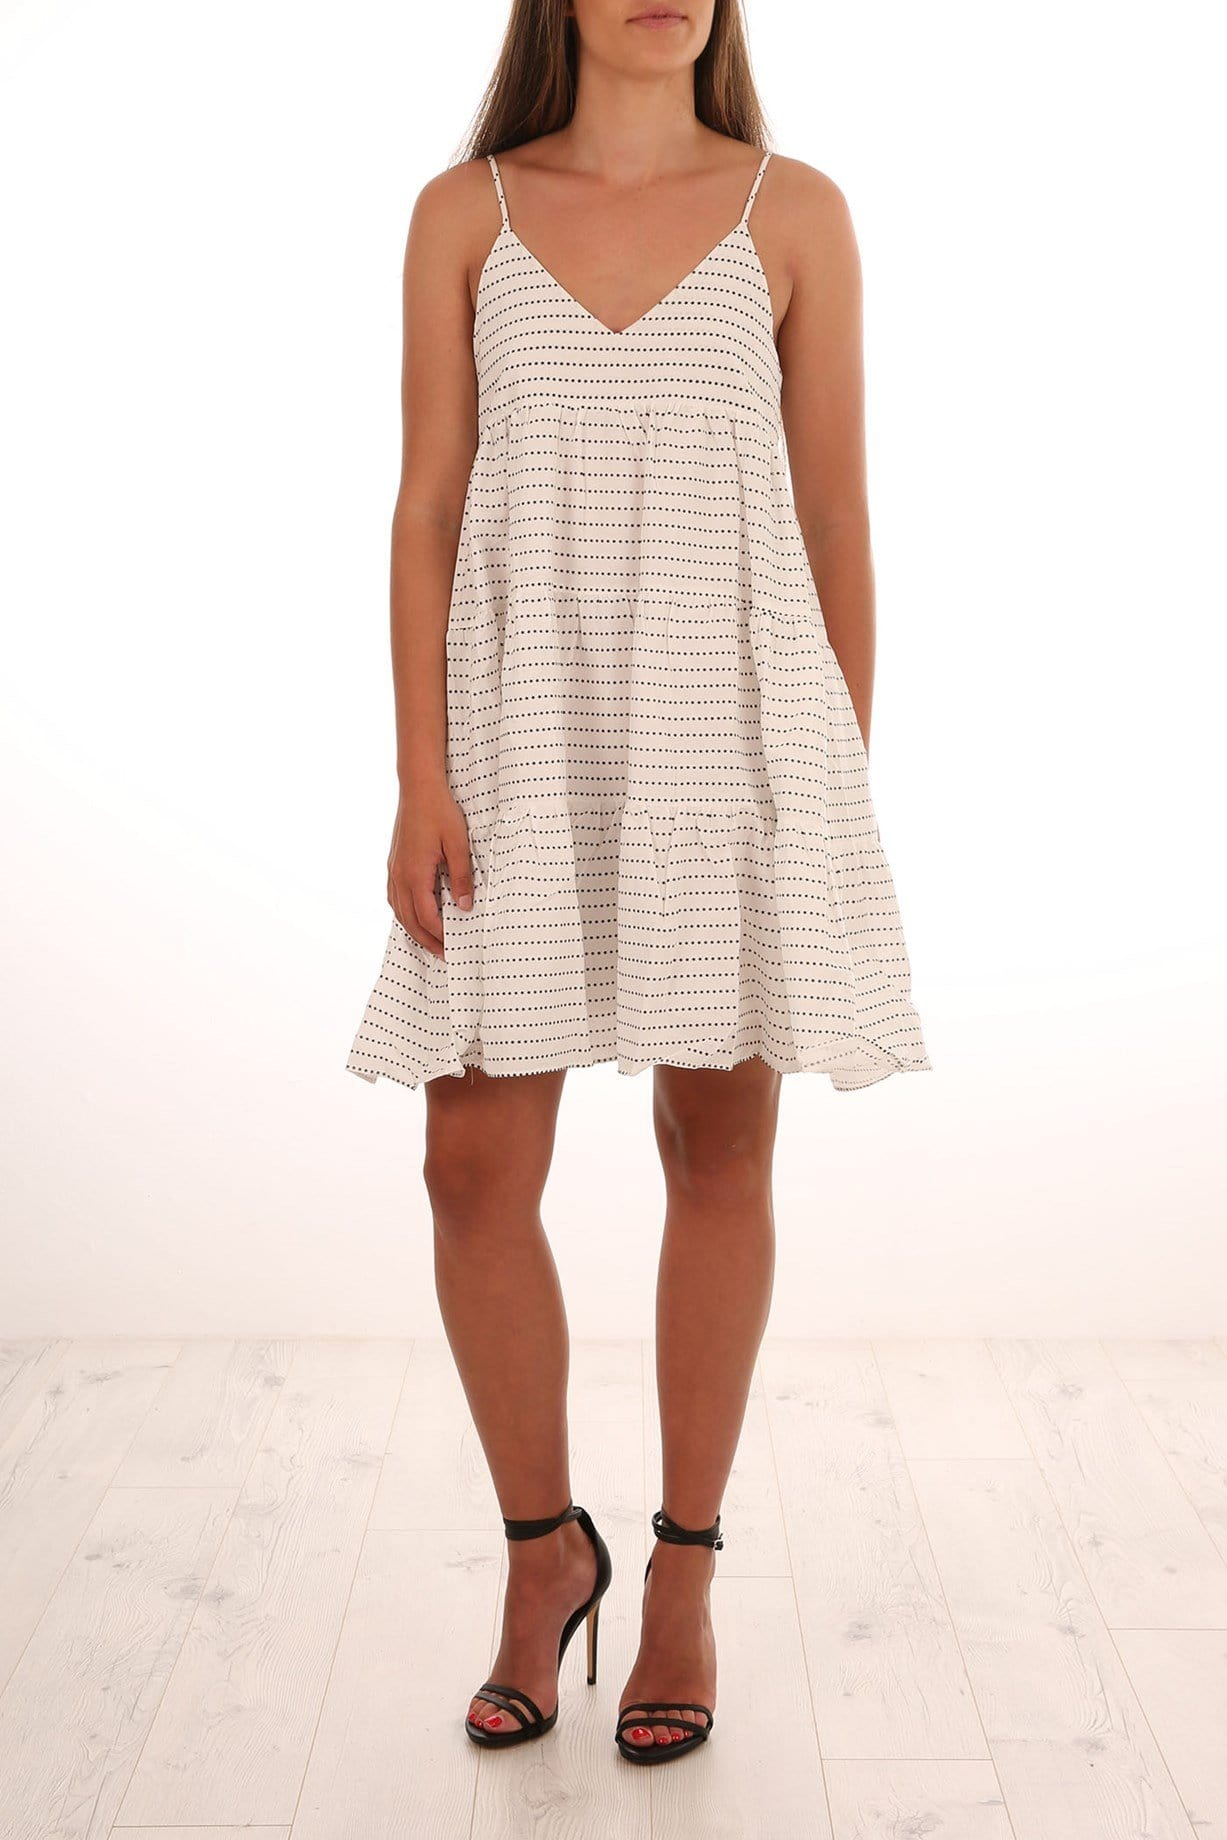 Iman Cotton Dress Ivory Black Star